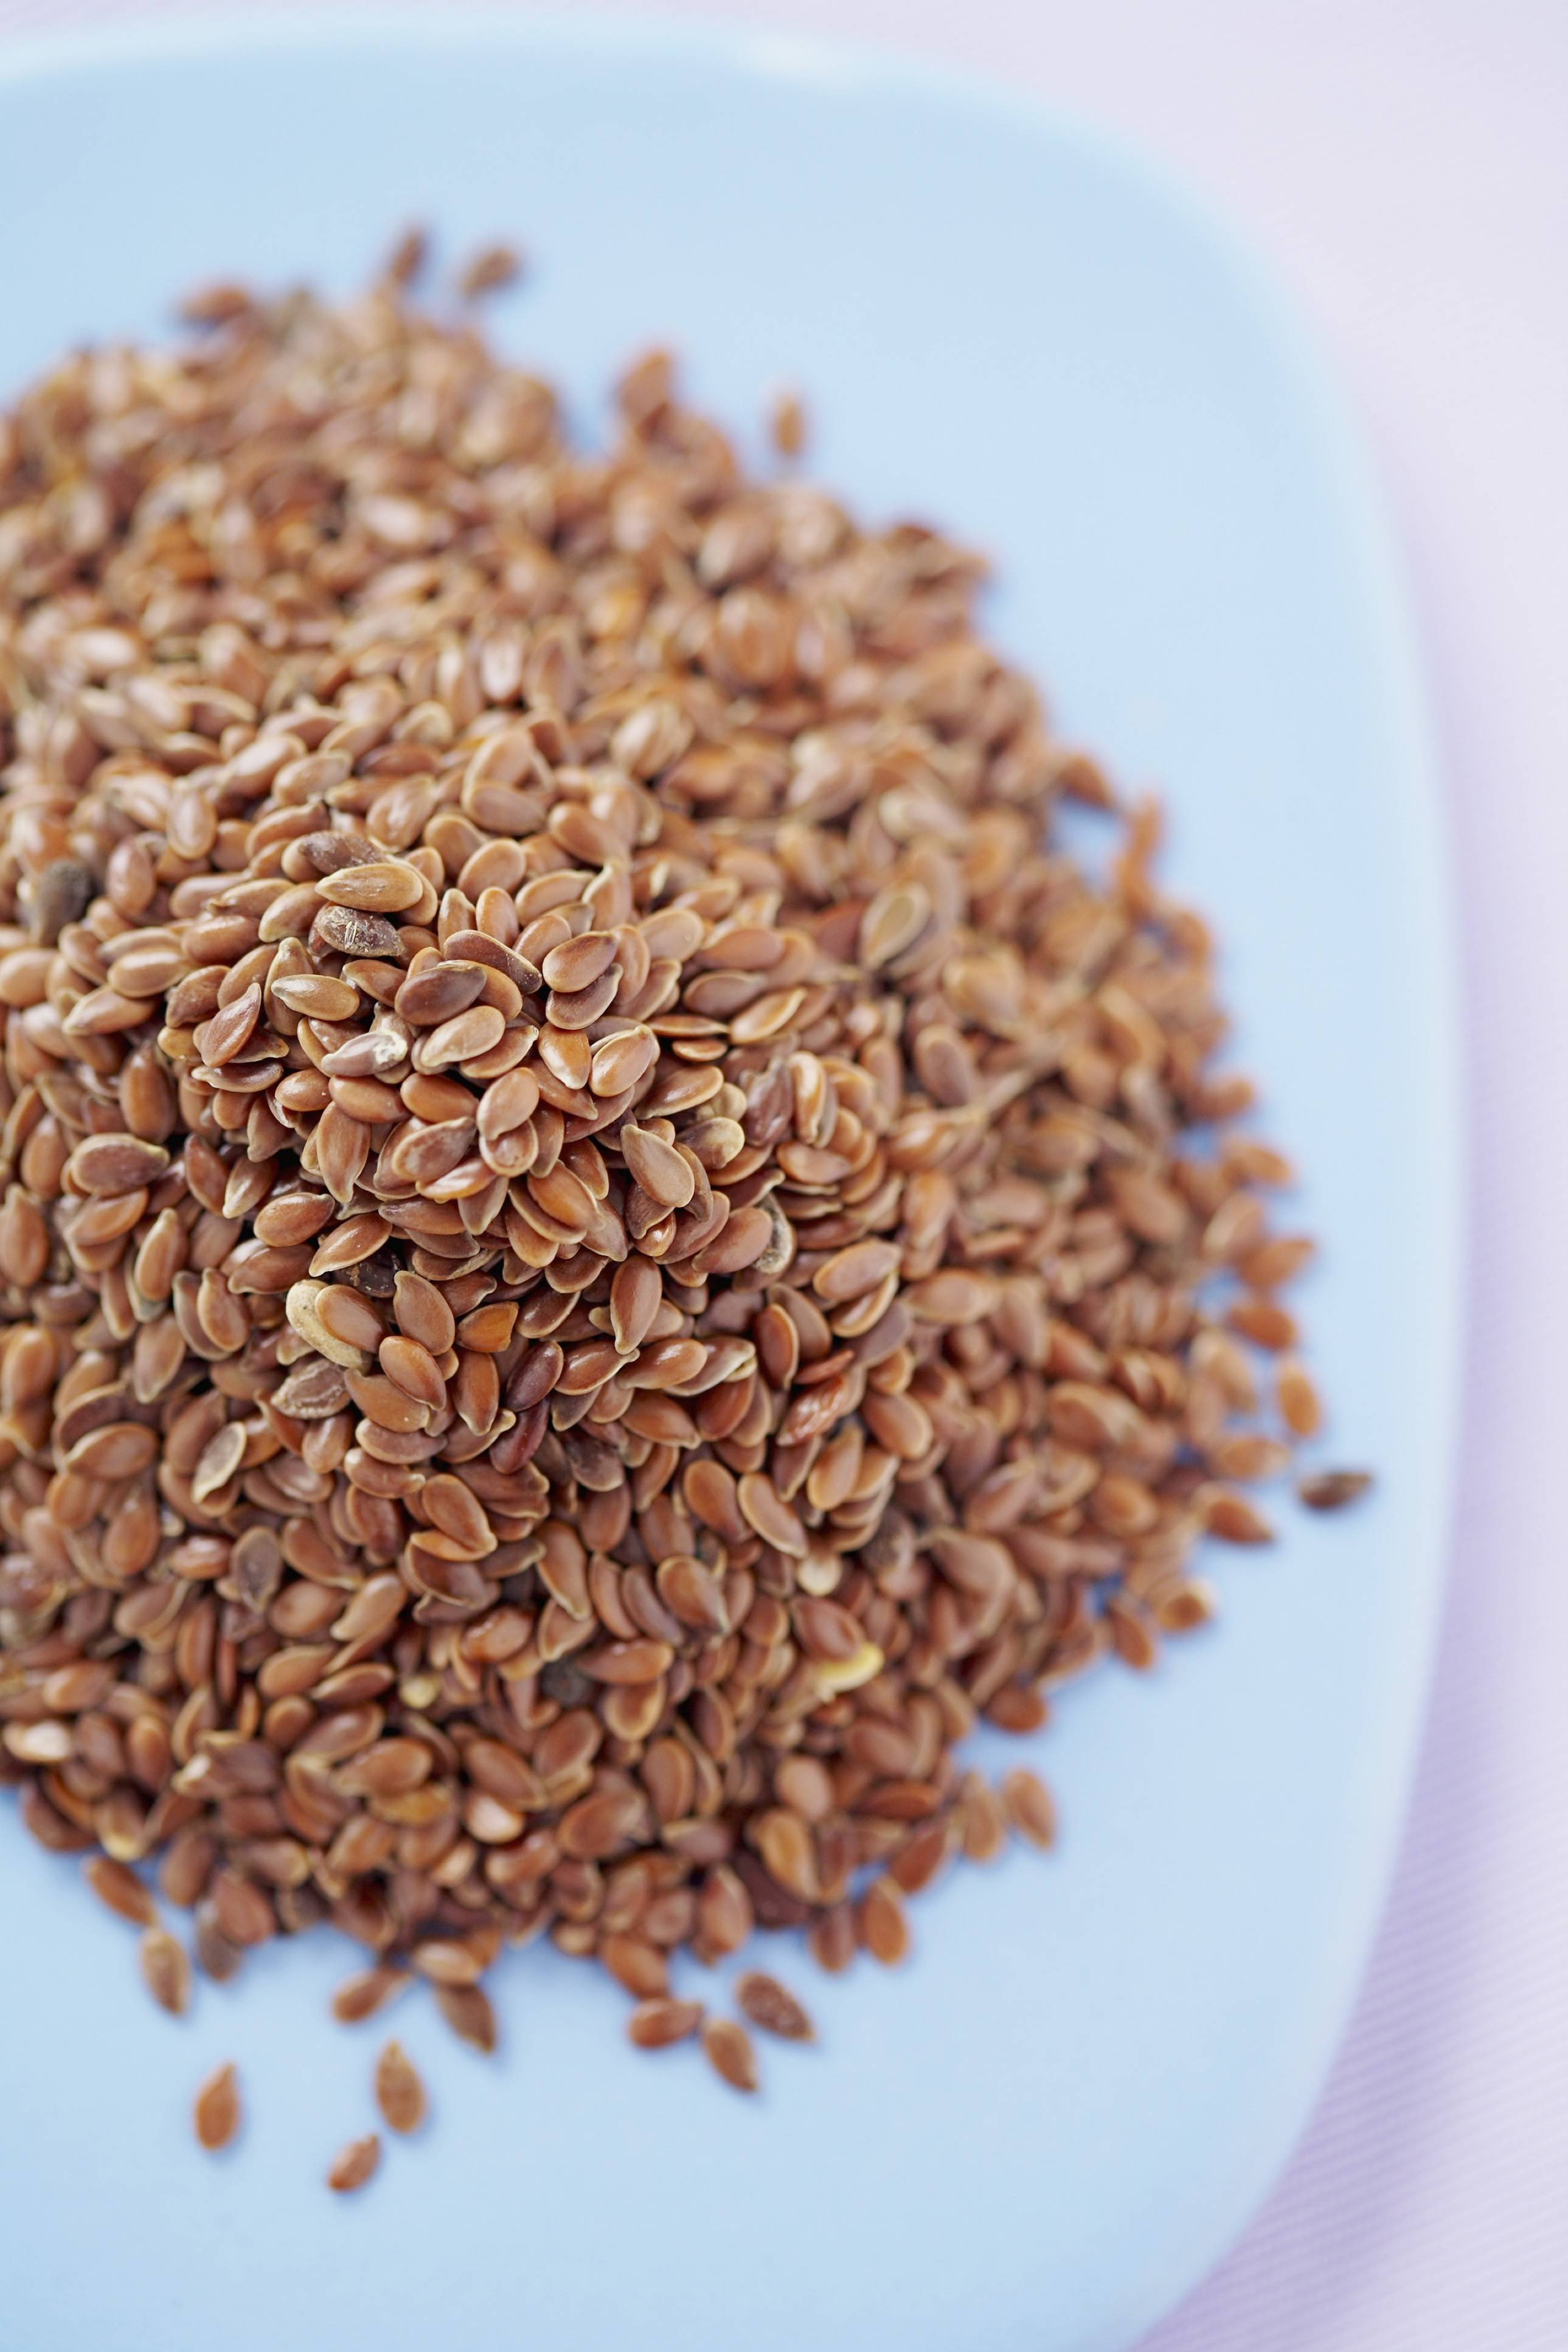 Flaxseed can be ground and added to foods such as yogurt or cottage cheese.